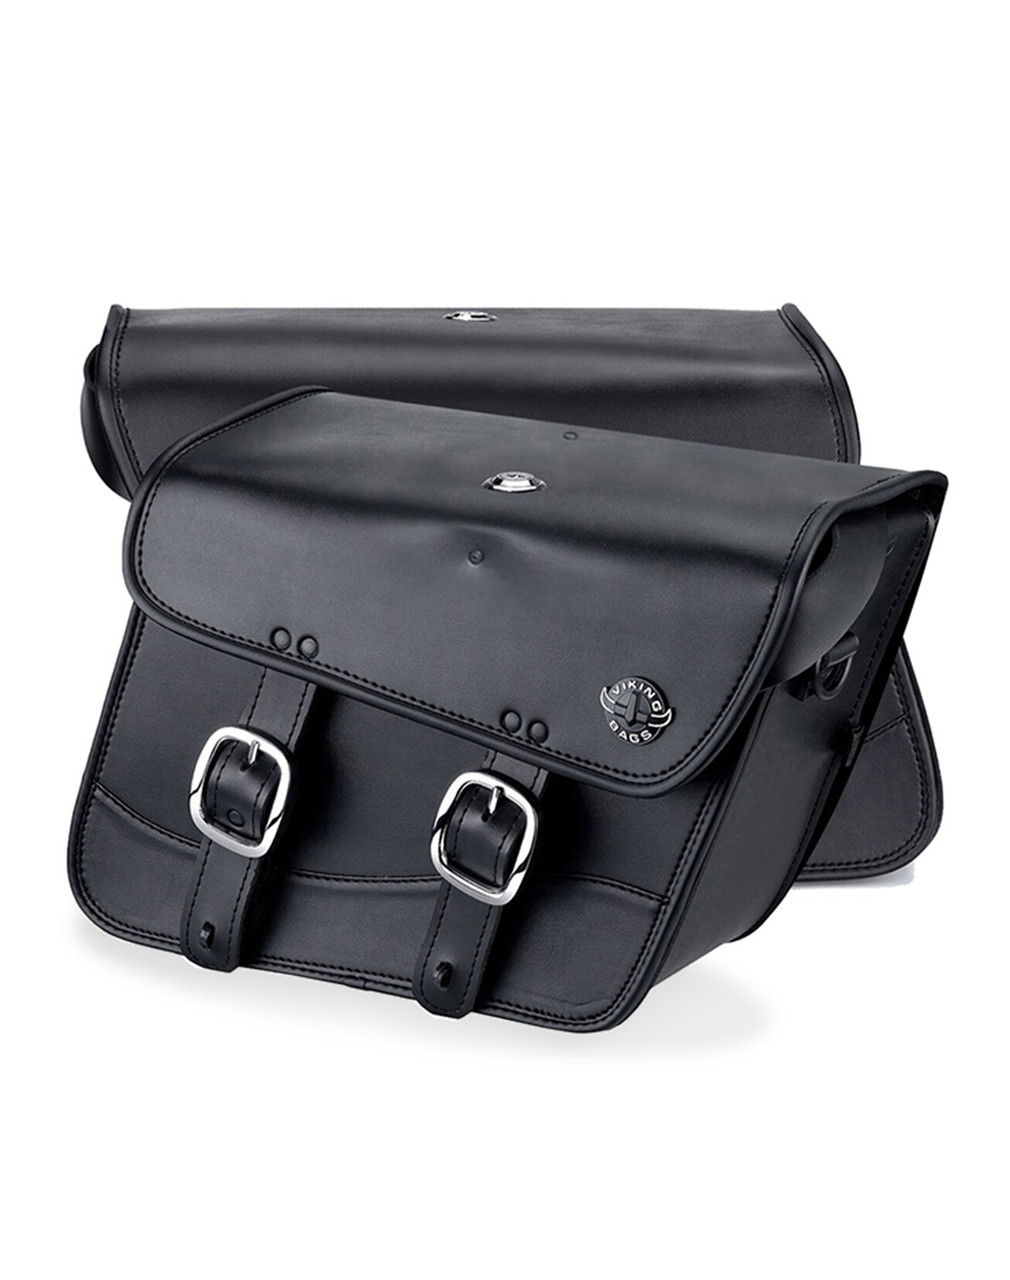 Triumph Thunderbird Thor Series Small Motorcycle Saddlebags Both Bags View